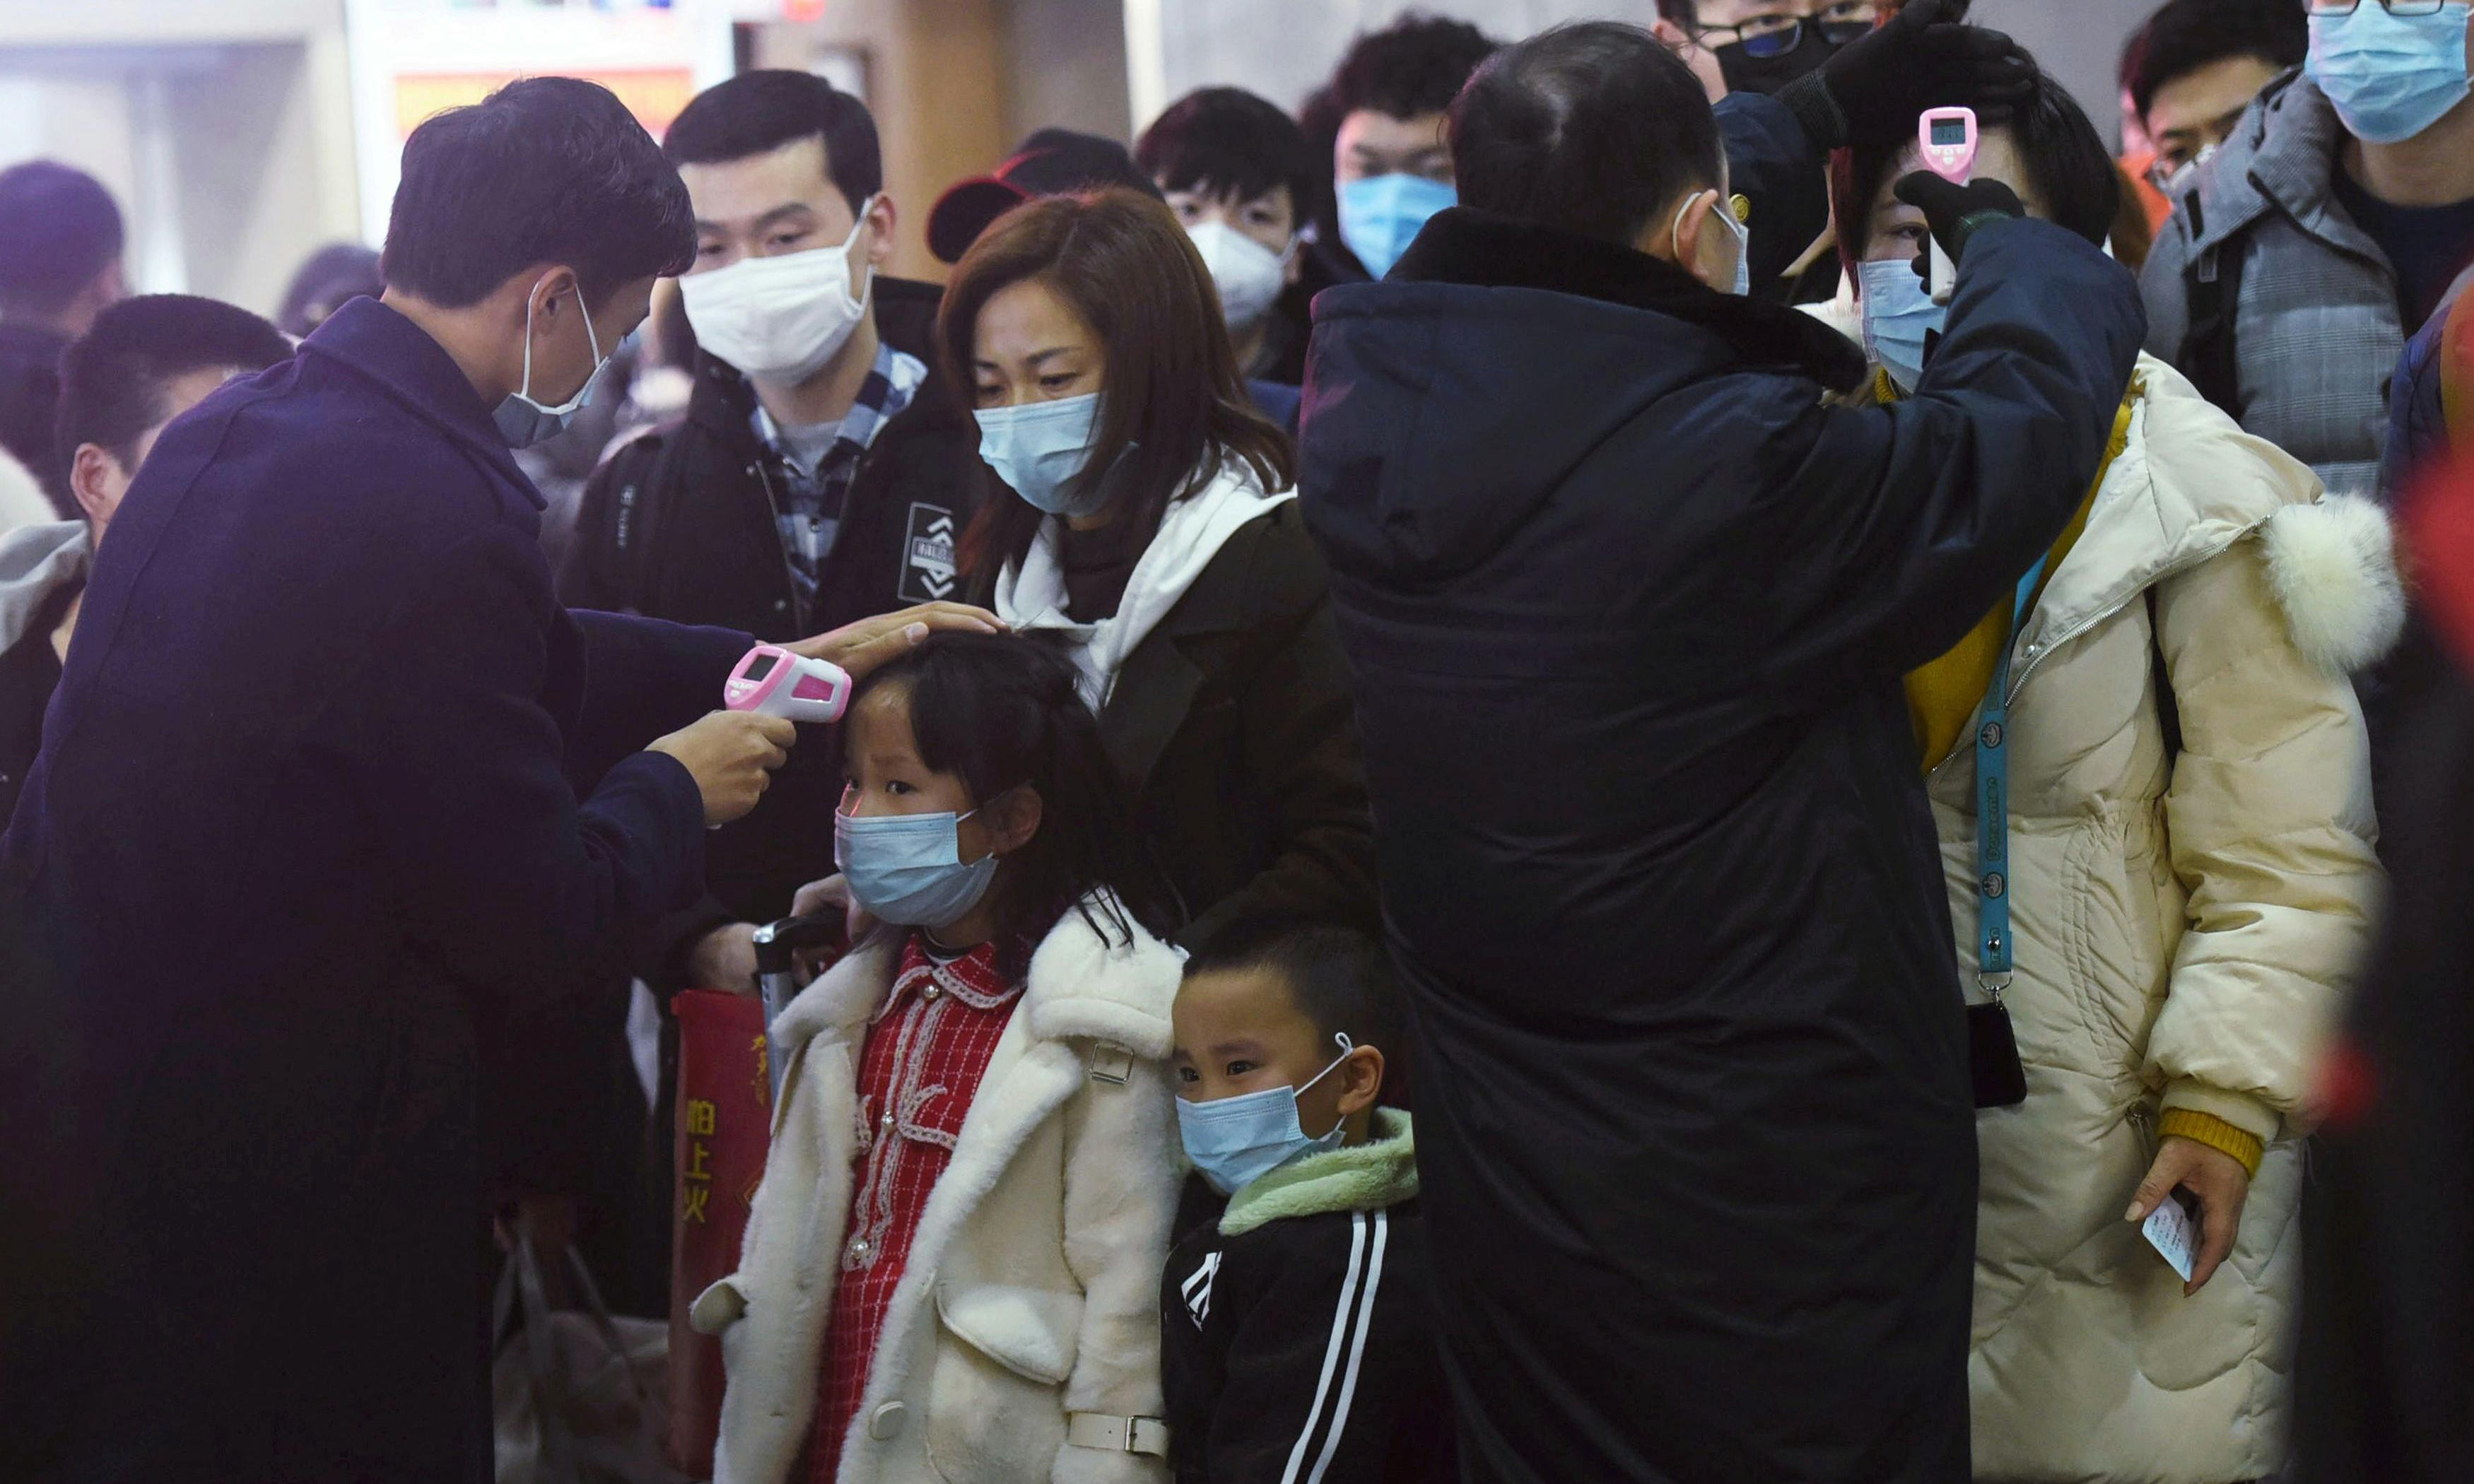 China's response to the coronavirus shows what it learned from the Sars cover-up